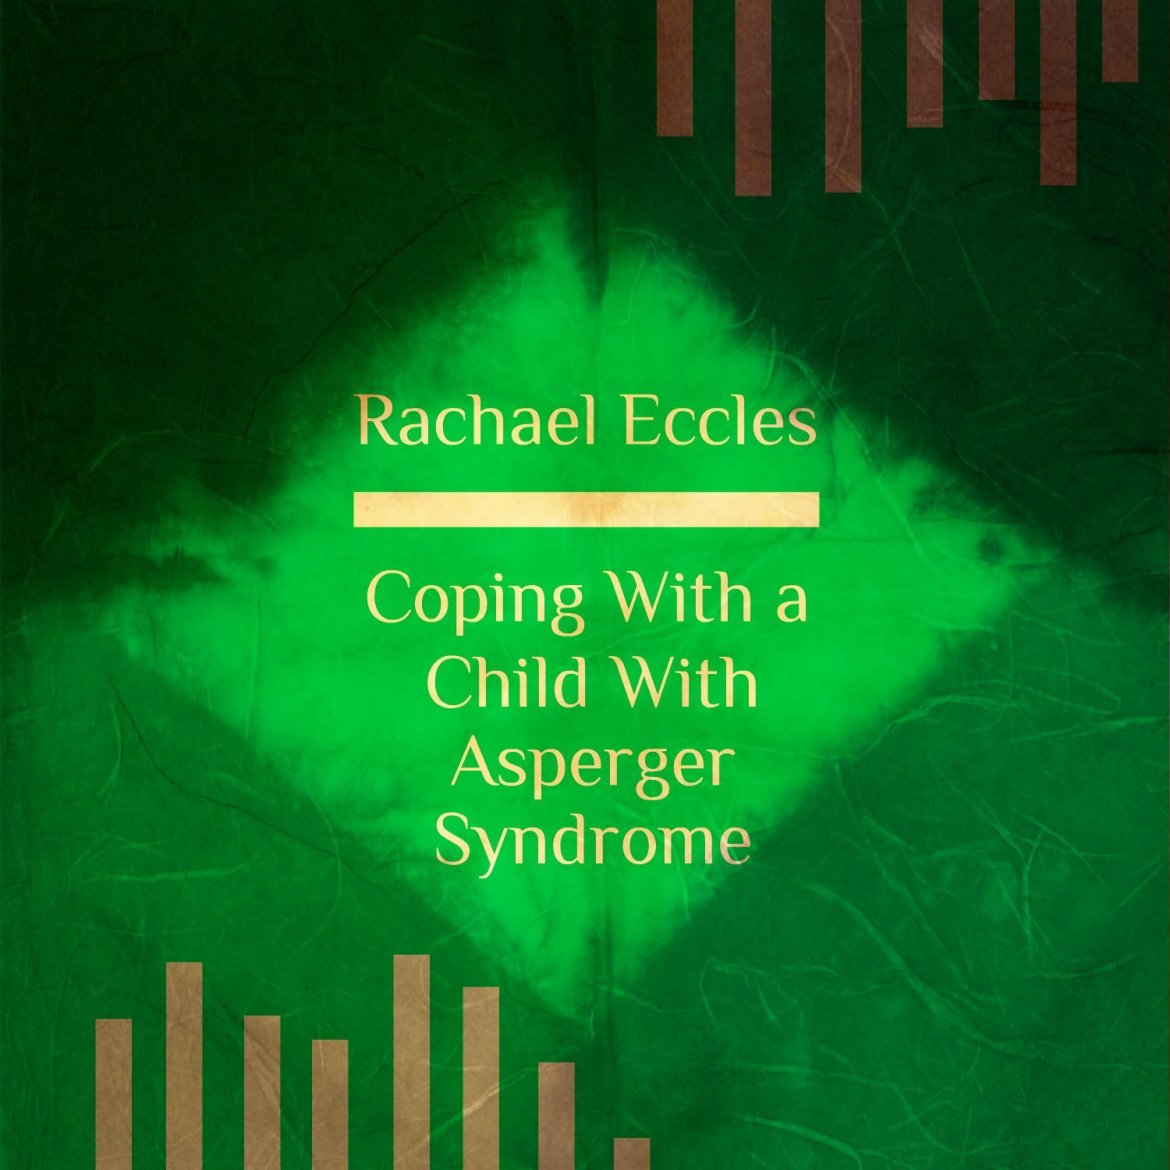 Coping with a child with Asperger syndrome, self hypnosis hypnotherapy instant download MP3